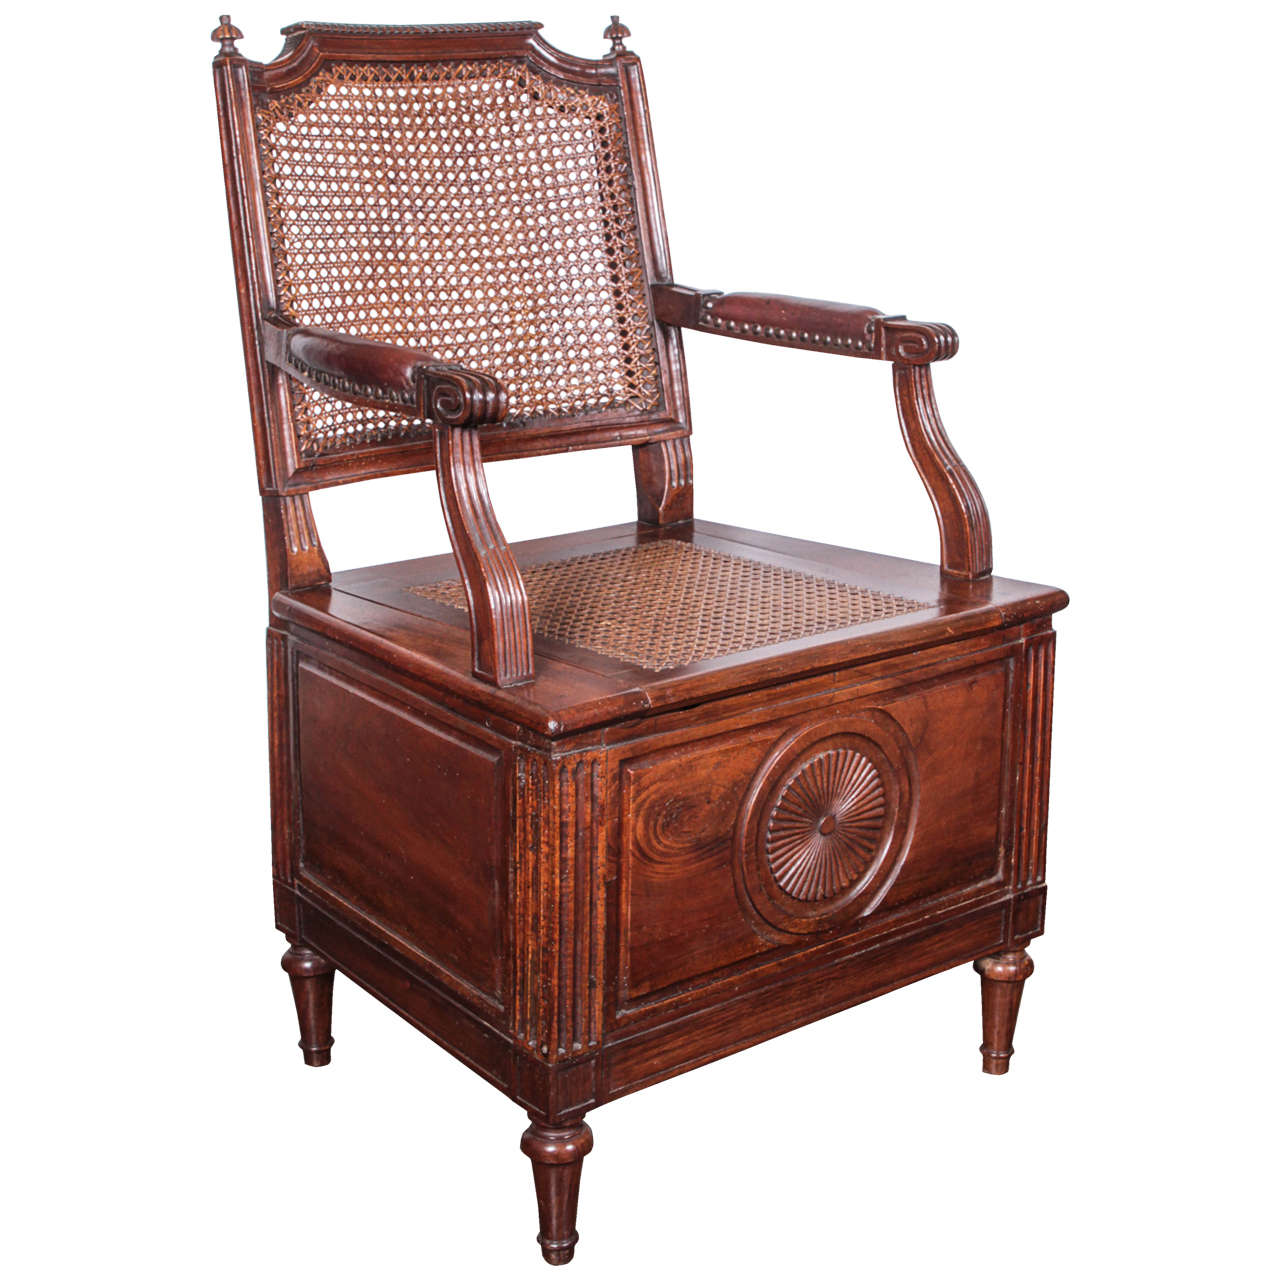 Chaise Percee Of Louis Xvi Chaise Perc E For Sale At 1stdibs